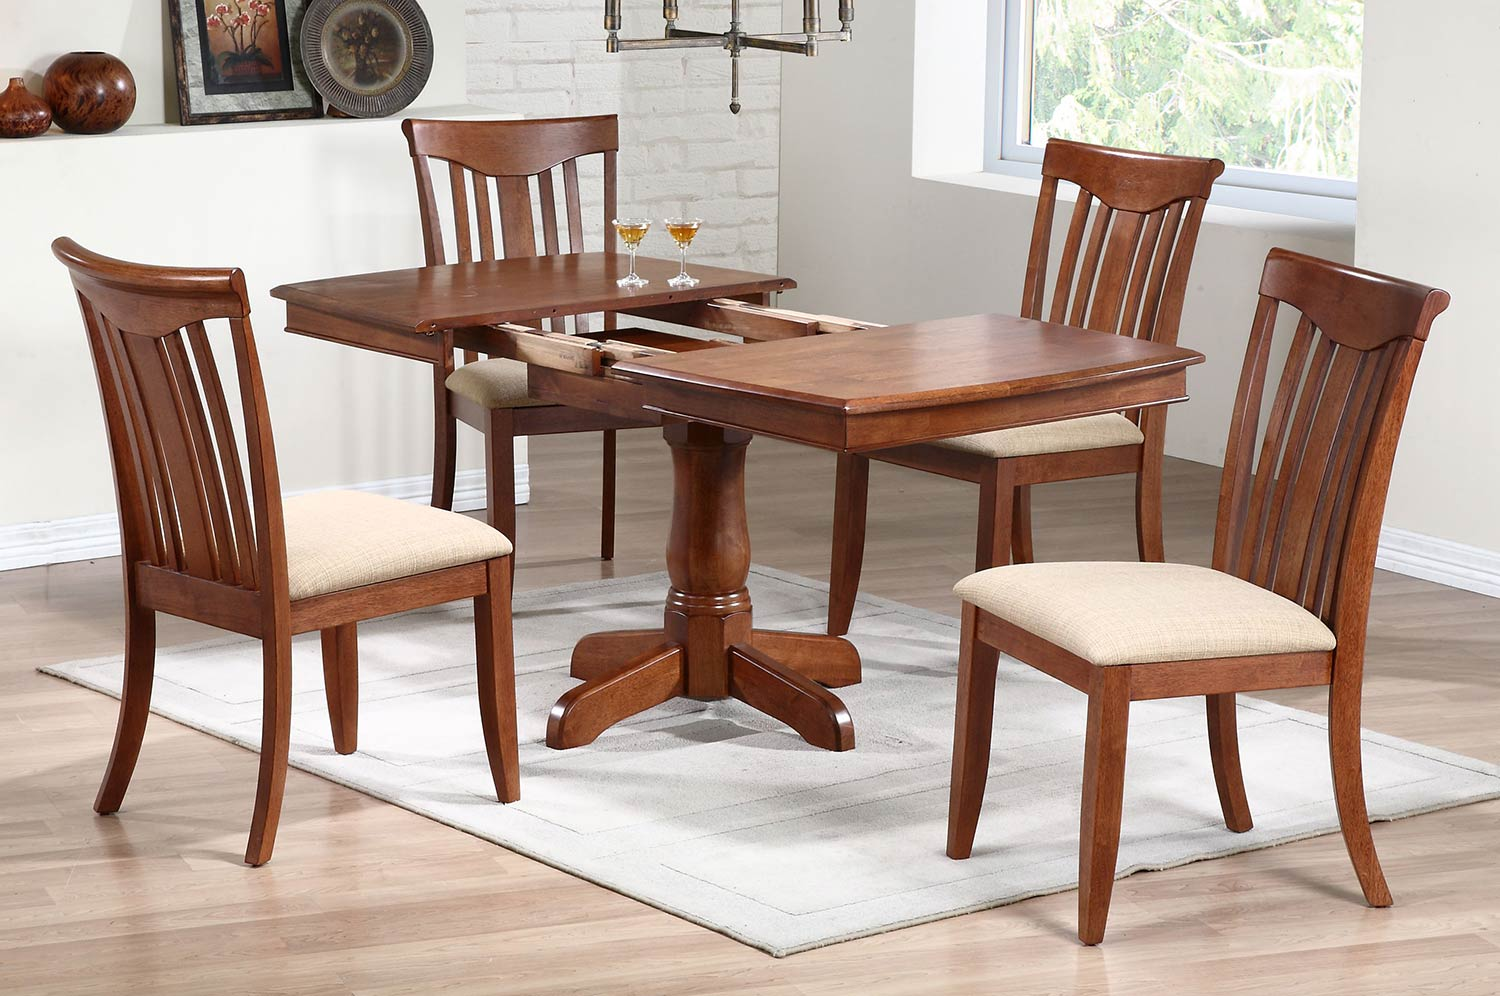 Iconic Furniture Single Pedestal Boat Shaped Dining Set